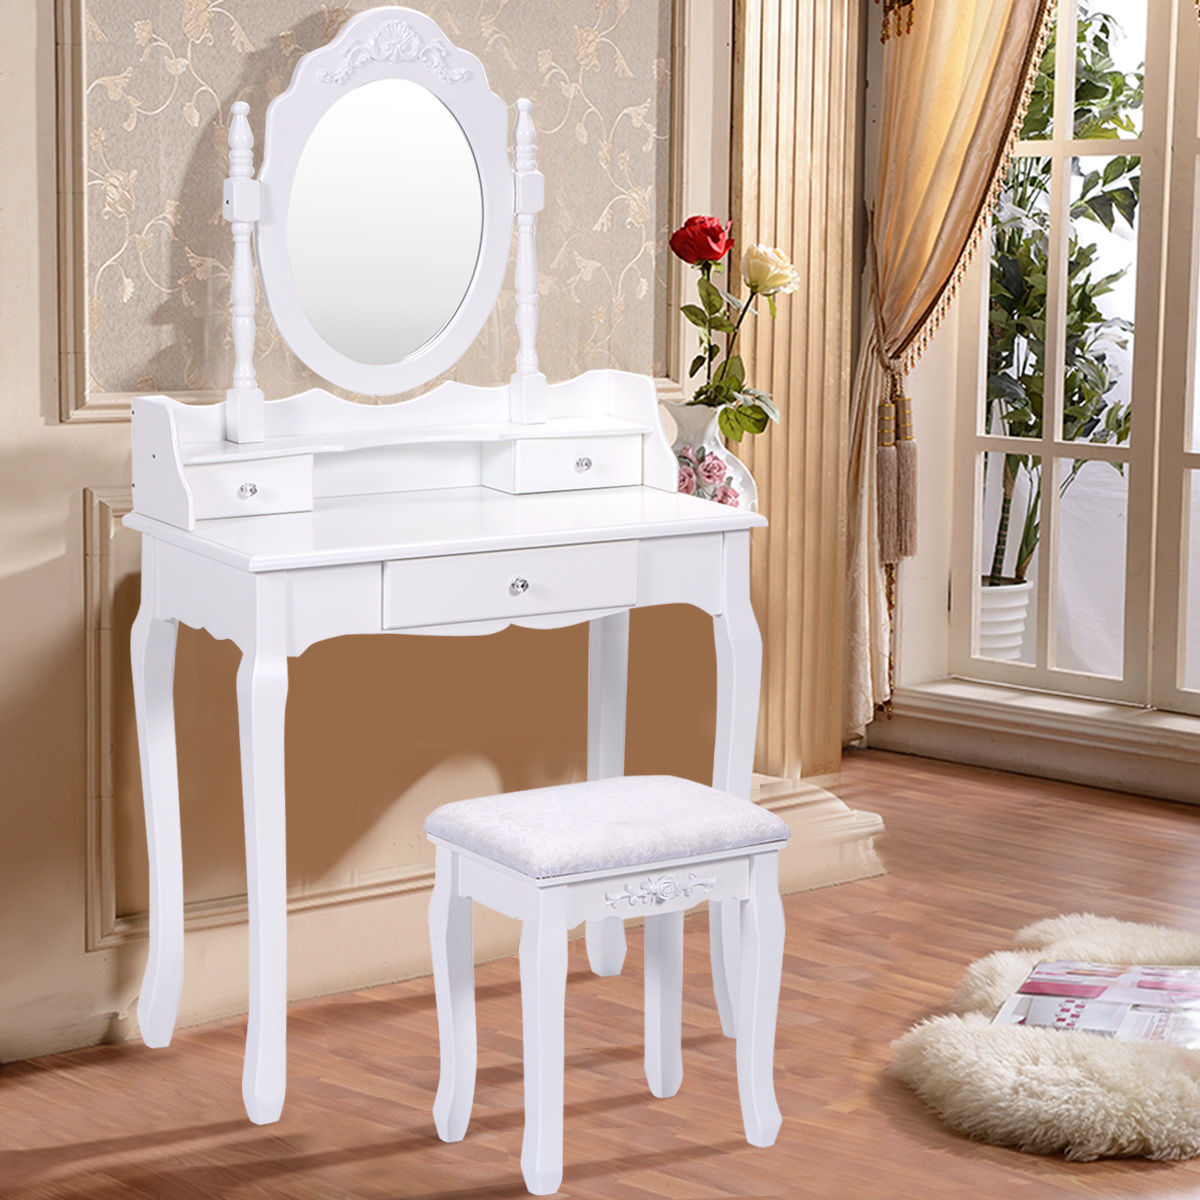 Costway White Vanity Wood Makeup Dressing Table Stool Set Bedroom With  Mirror + 3 Drawer - Walmart